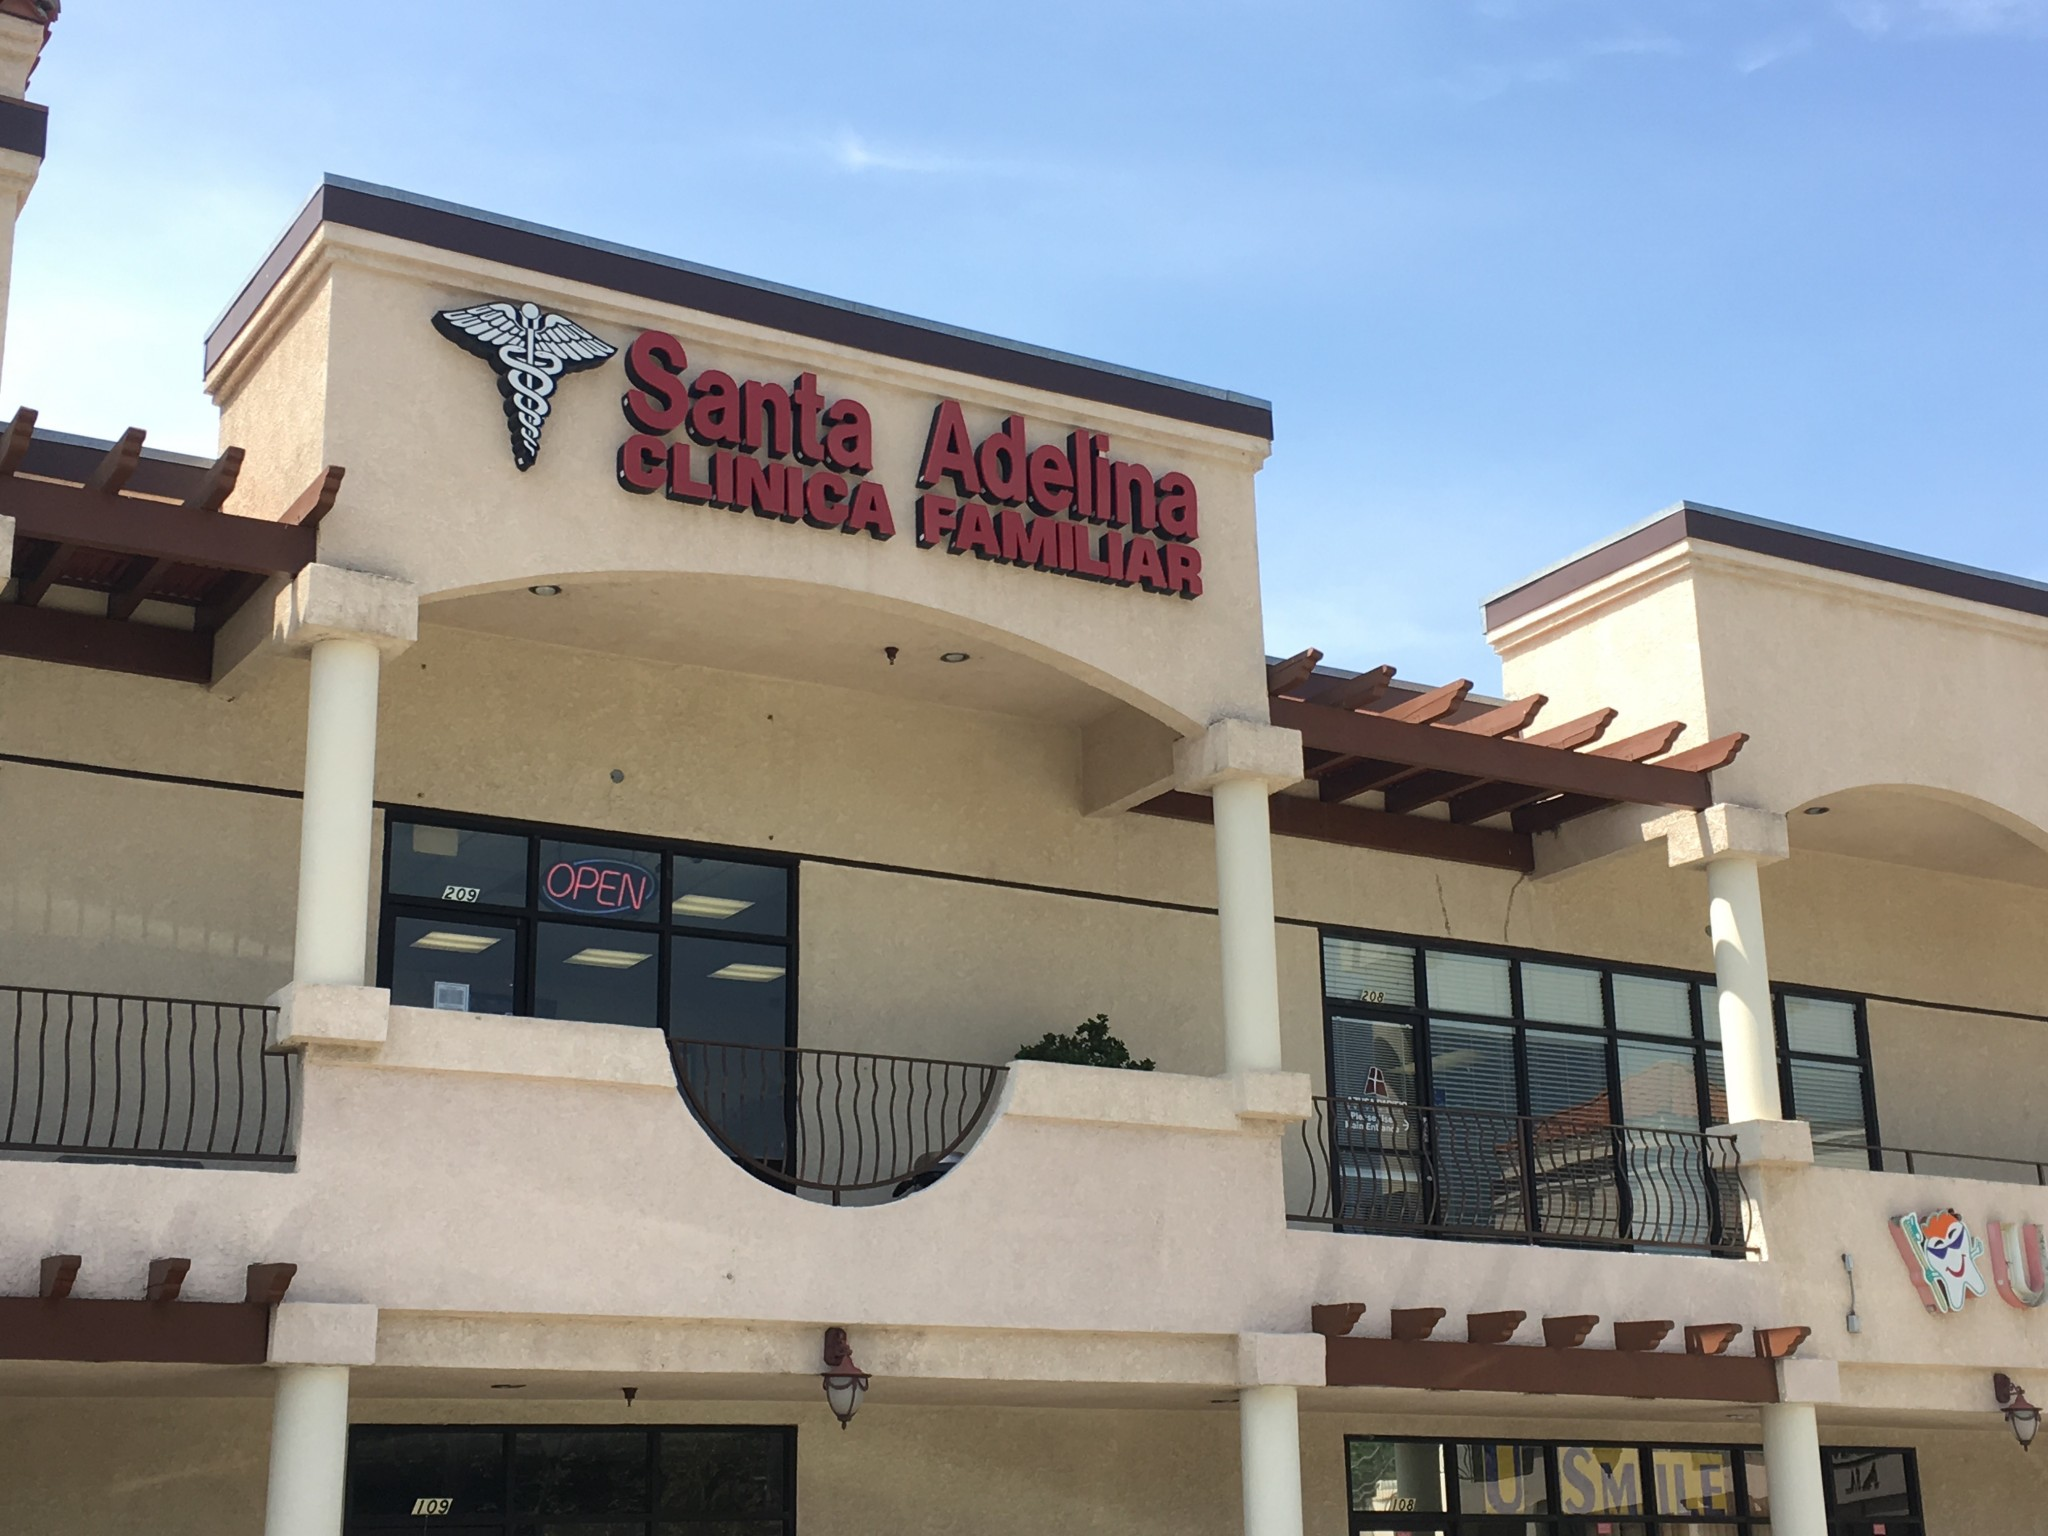 The Santa Adelina clinic where Velazquez works. (Photo: Karen Foshay)